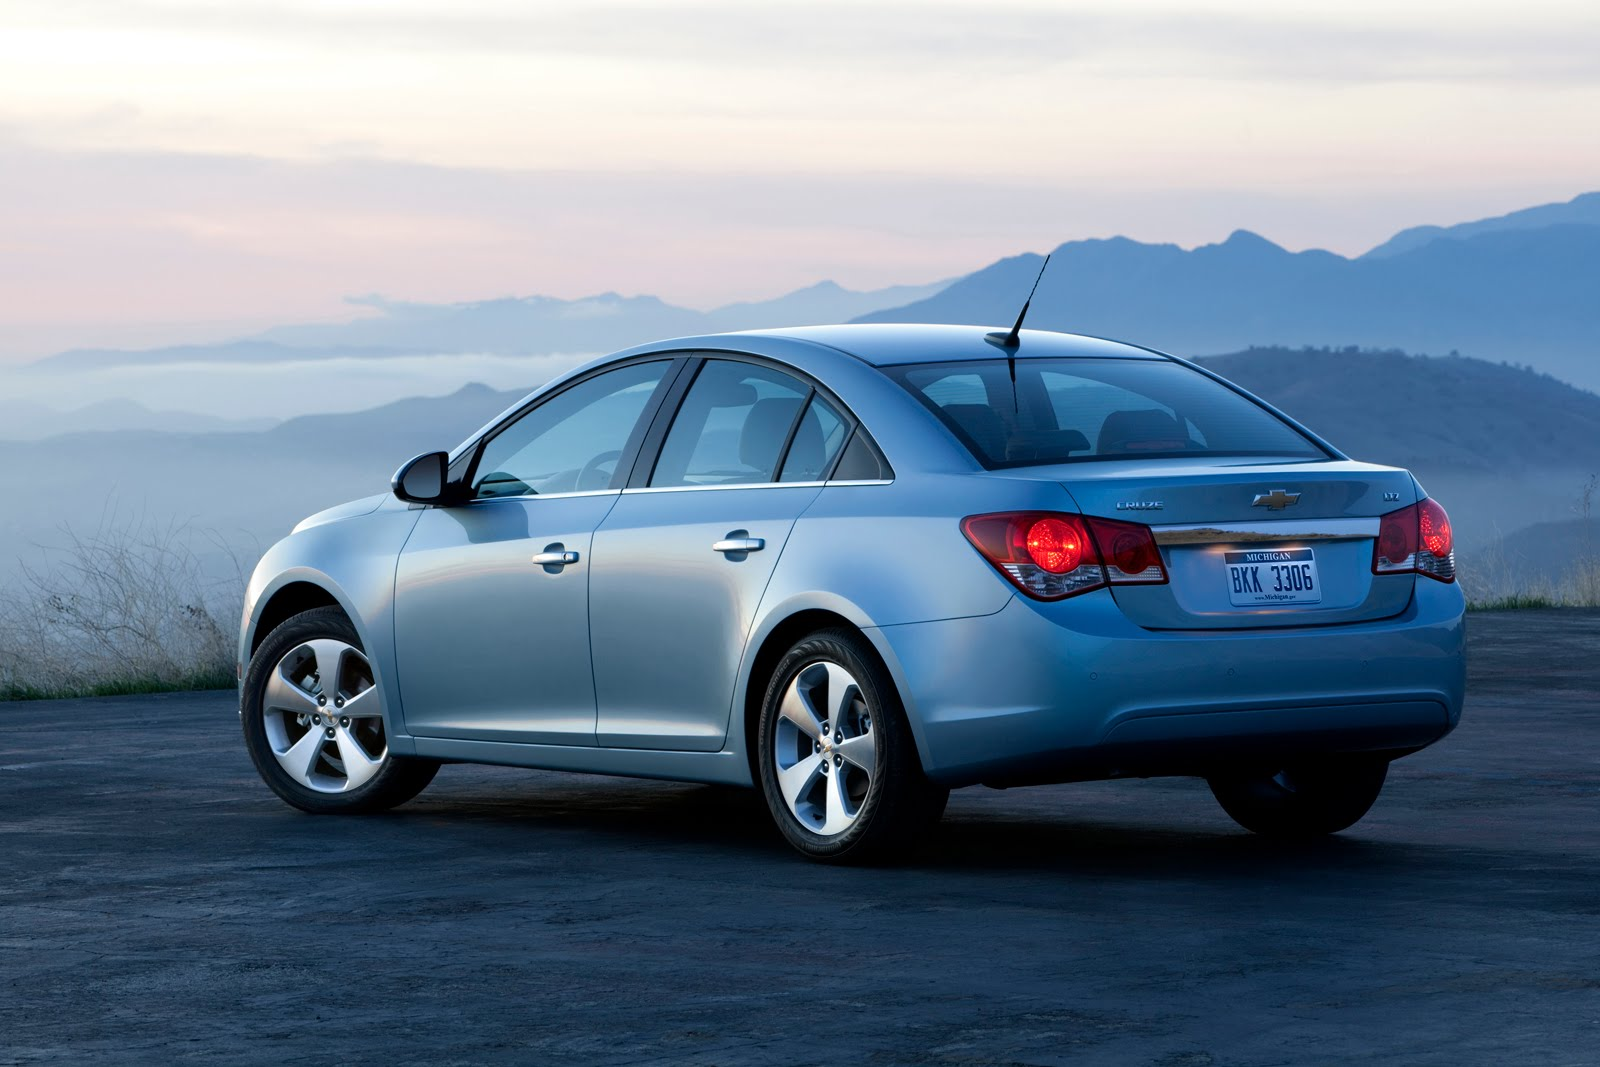 Gm Recall Chevrolet Cruze Models For 2011 Auto Blitz